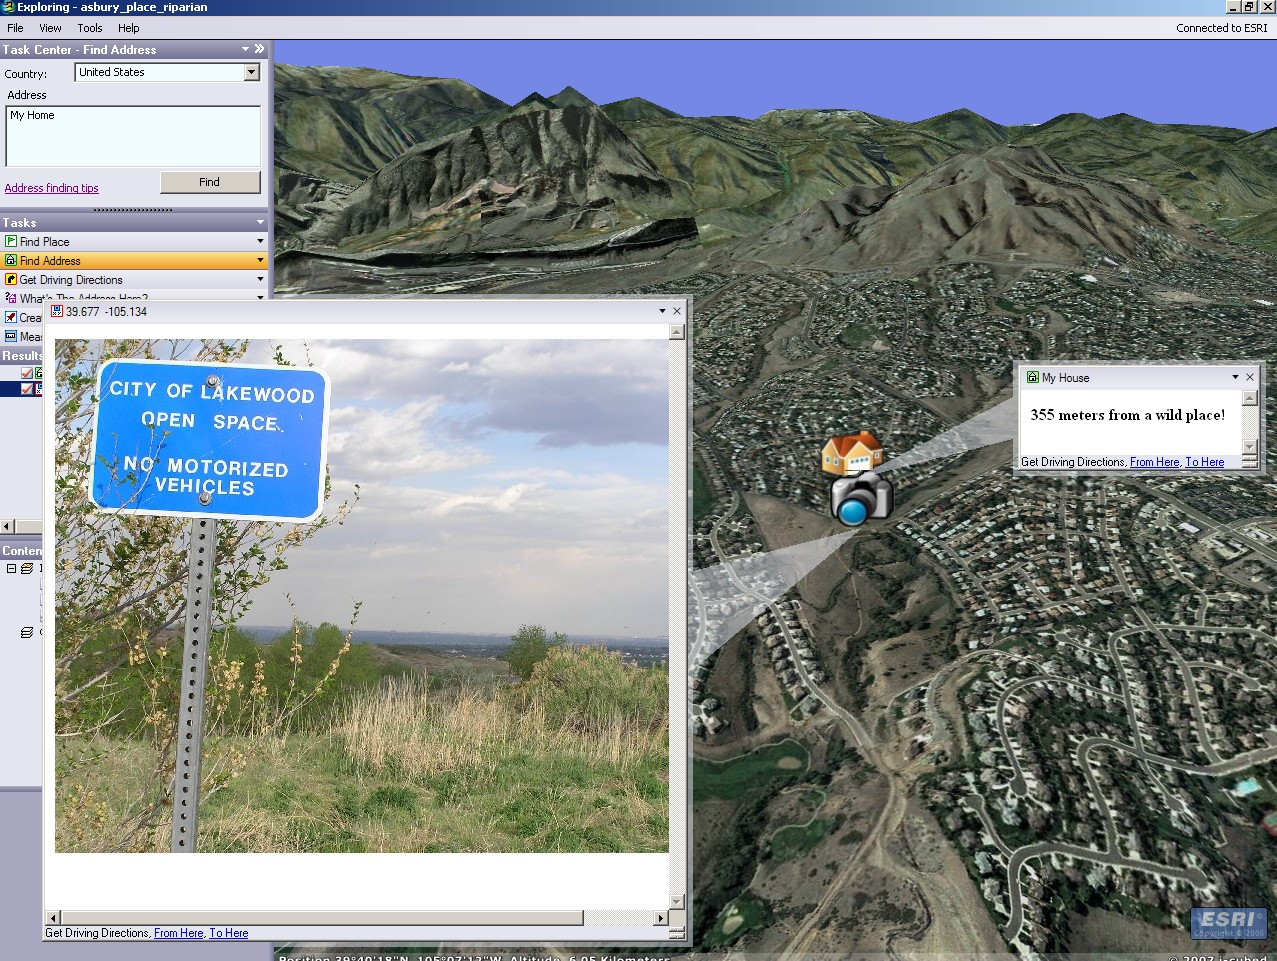 Example of ArcGIS Explorer software adding multimedia content.